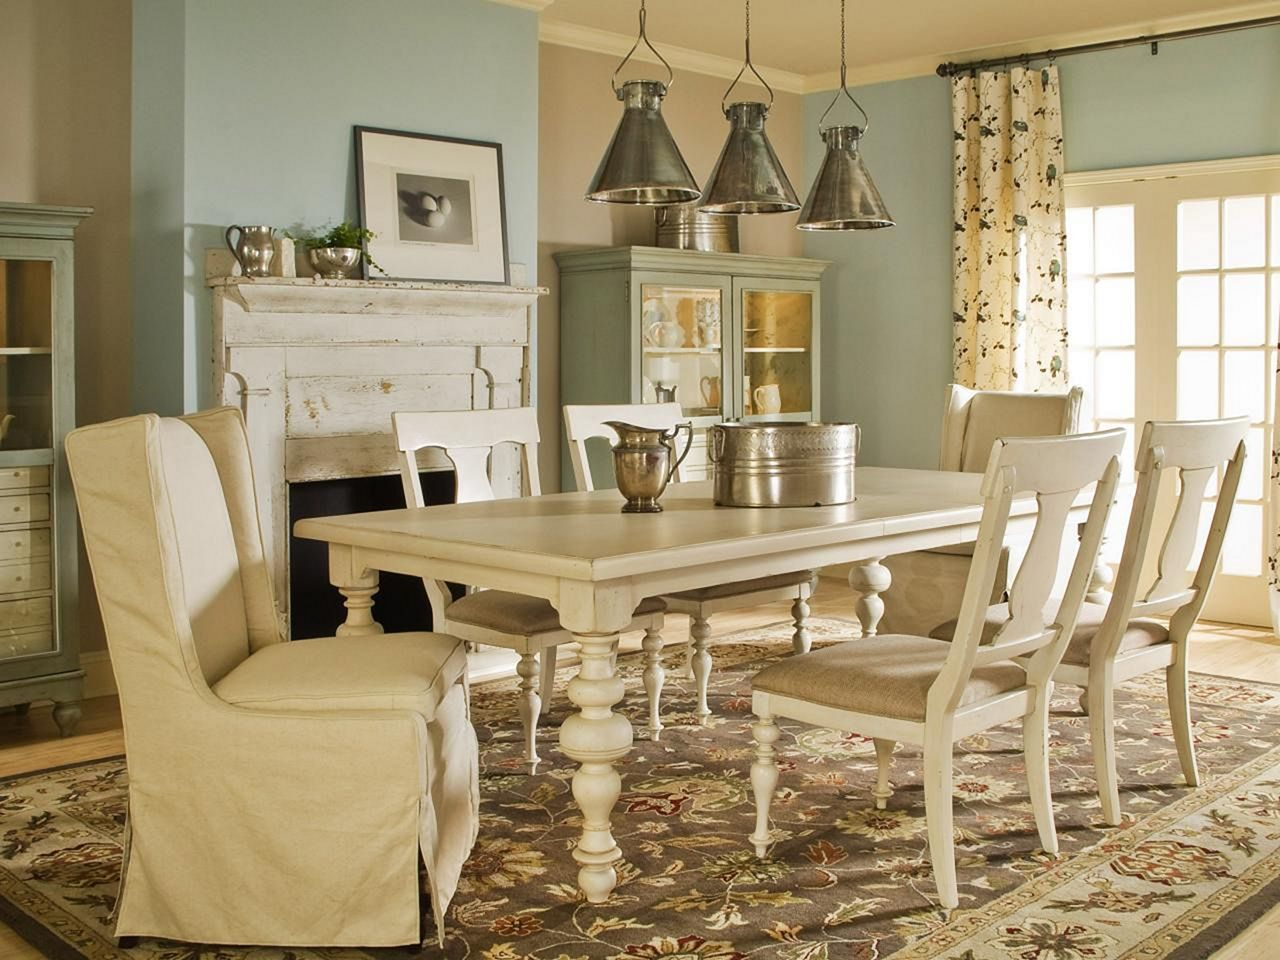 15 Marvelous French Country Dining Room Design You Have To See